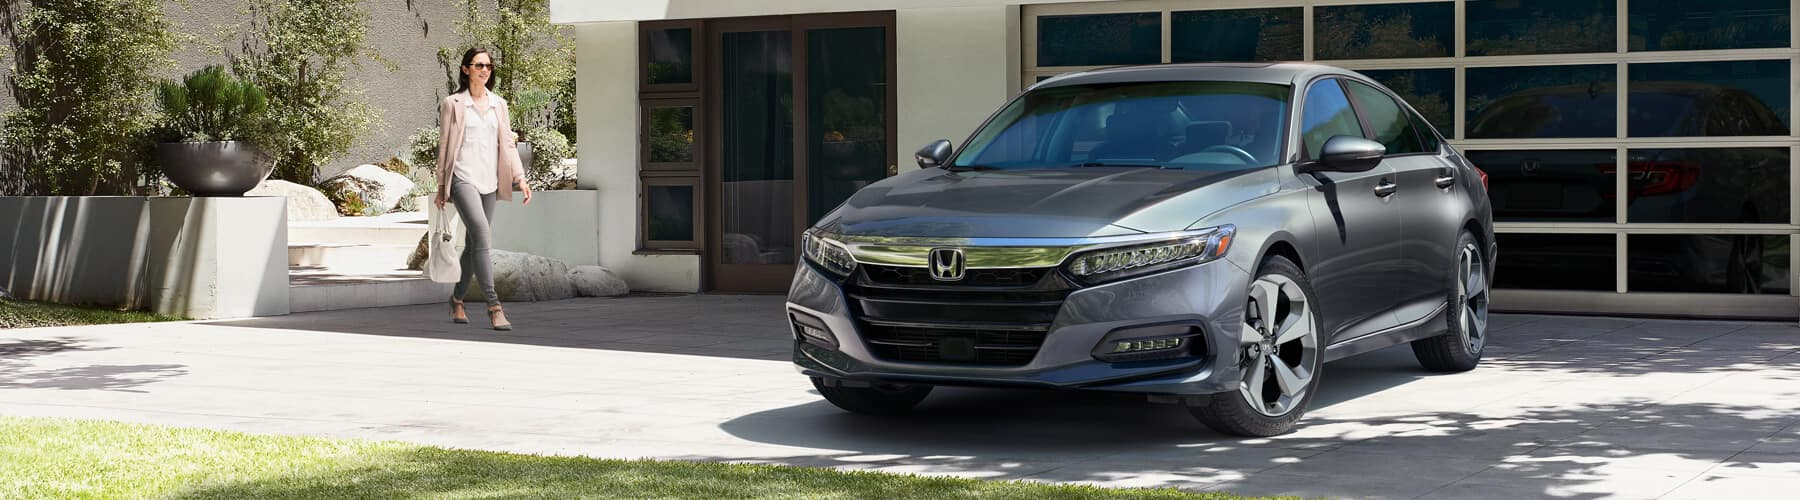 2019 Honda Accord Sedan Slider